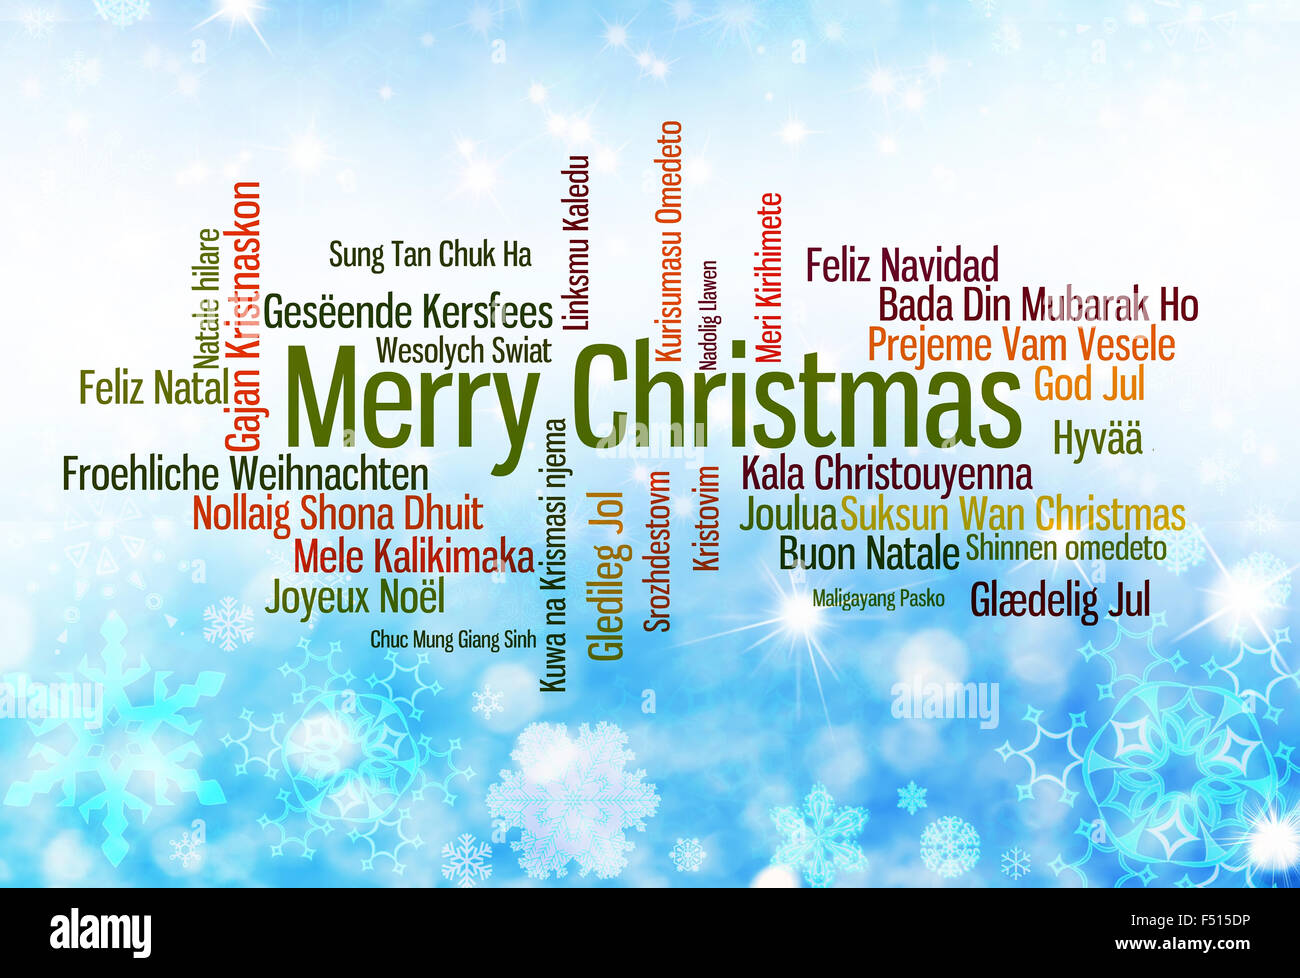 Christmas typography: Merry Christmas written in many languages - Stock Image